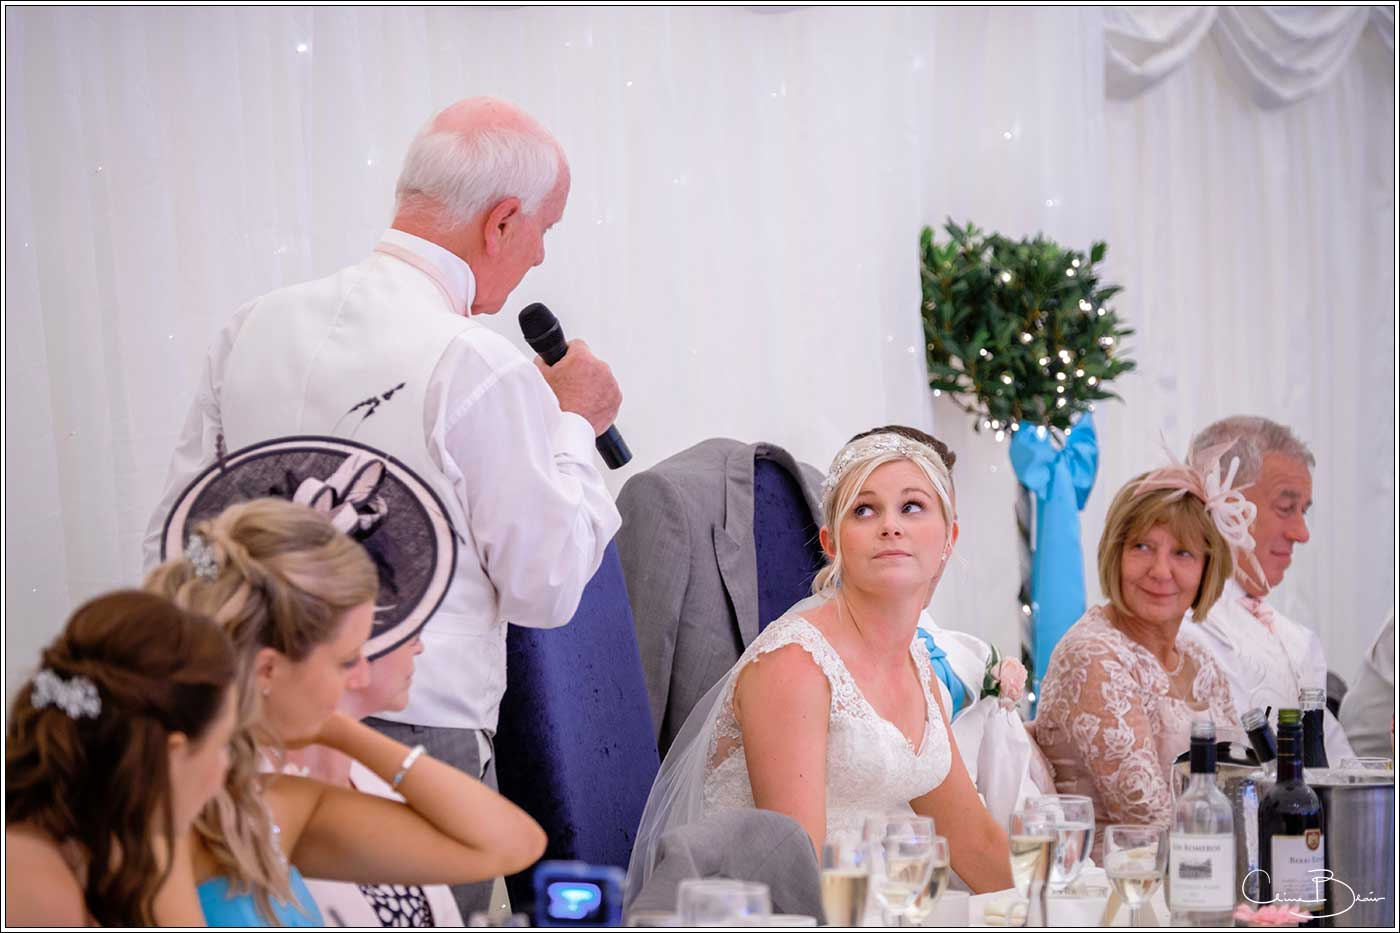 Coombe Abbey wedding photography showing bride listening to her father's speech